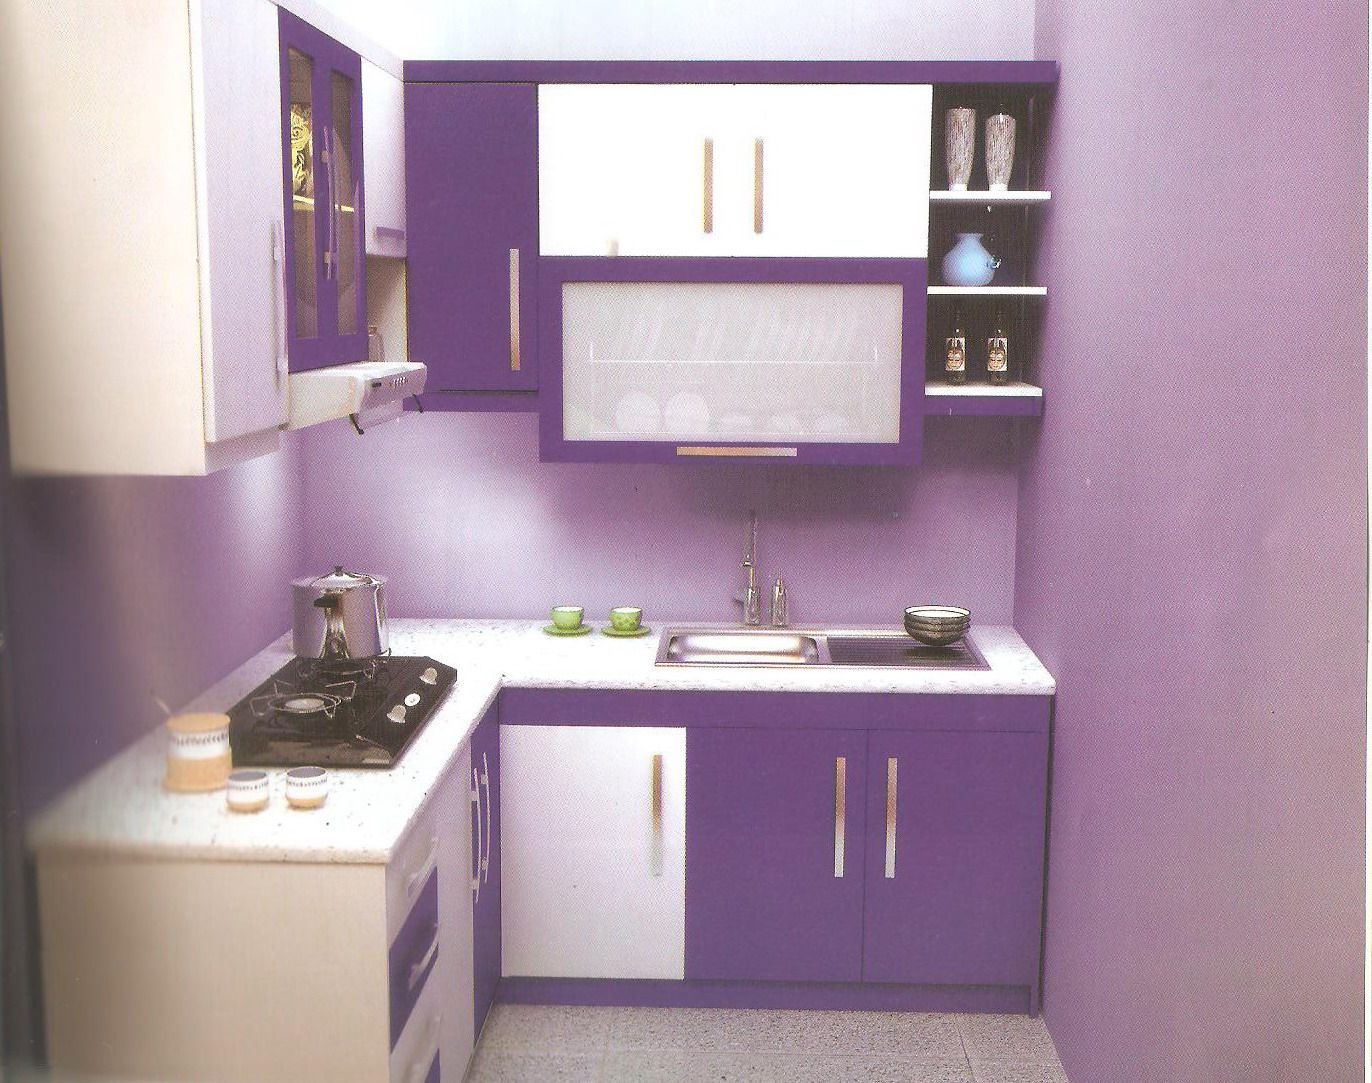 Best Kitchen Gallery: This Purposeful Purple Can Turn Any Space Into A Refreshing Retreat of Purple Kitchen Interior Design on rachelxblog.com